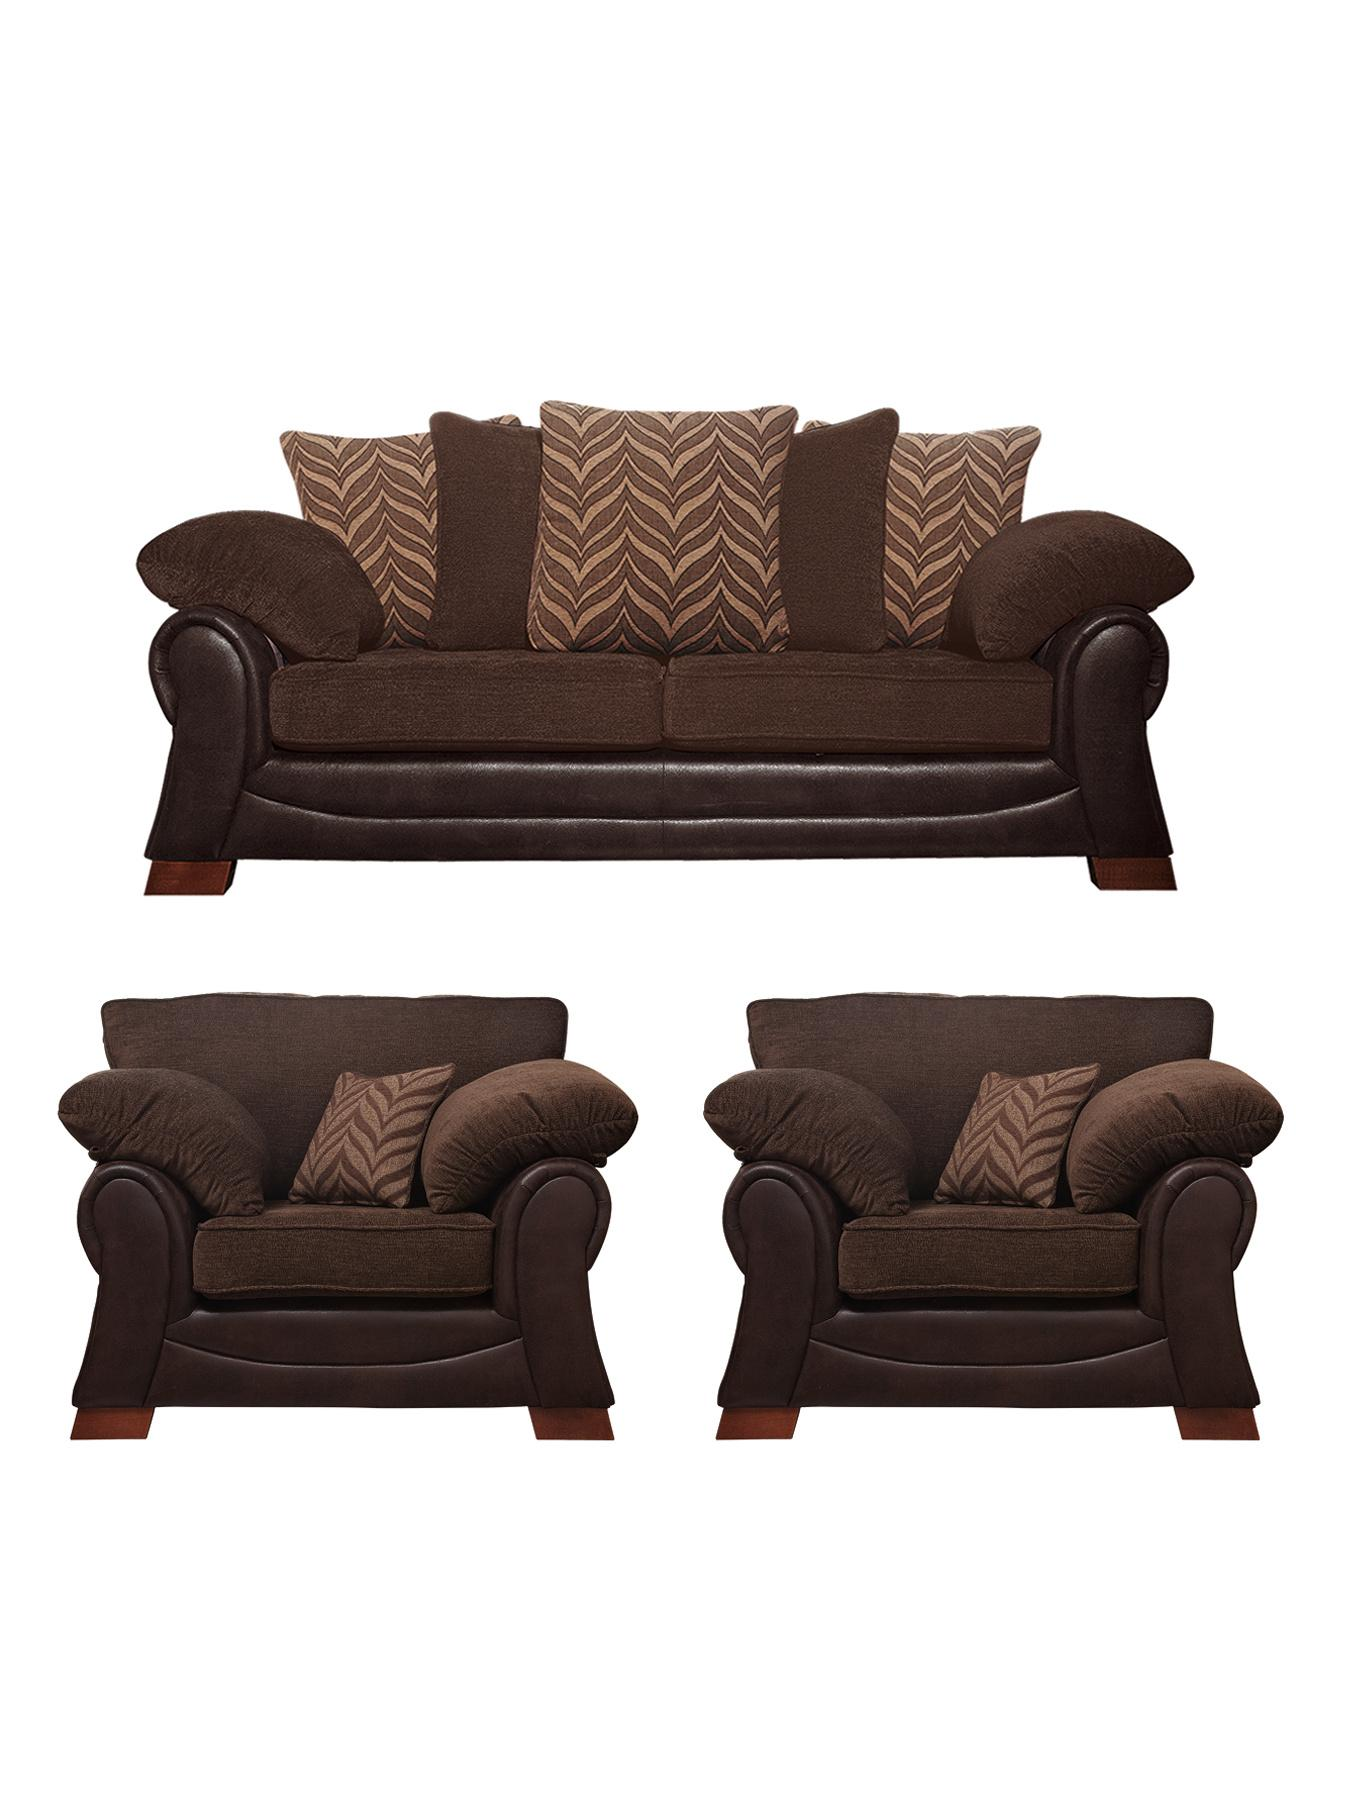 Mombassa 3-Seater Sofa + 2 Chairs - Chocolate, Chocolate,Black at Very, from Littlewoods